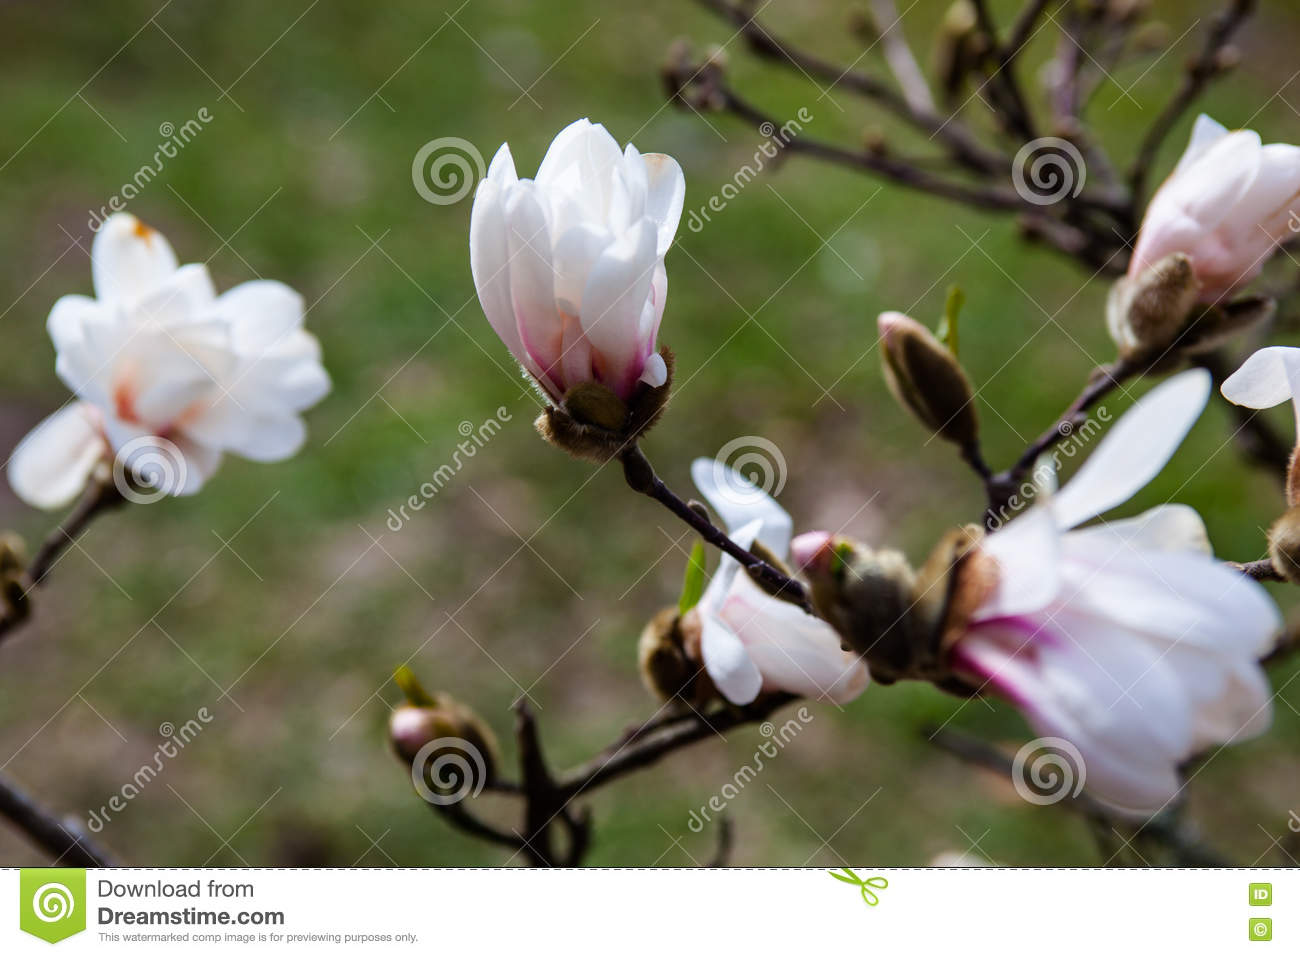 White Flowers Of The Magnolia Tree In Early Spring Stock Image